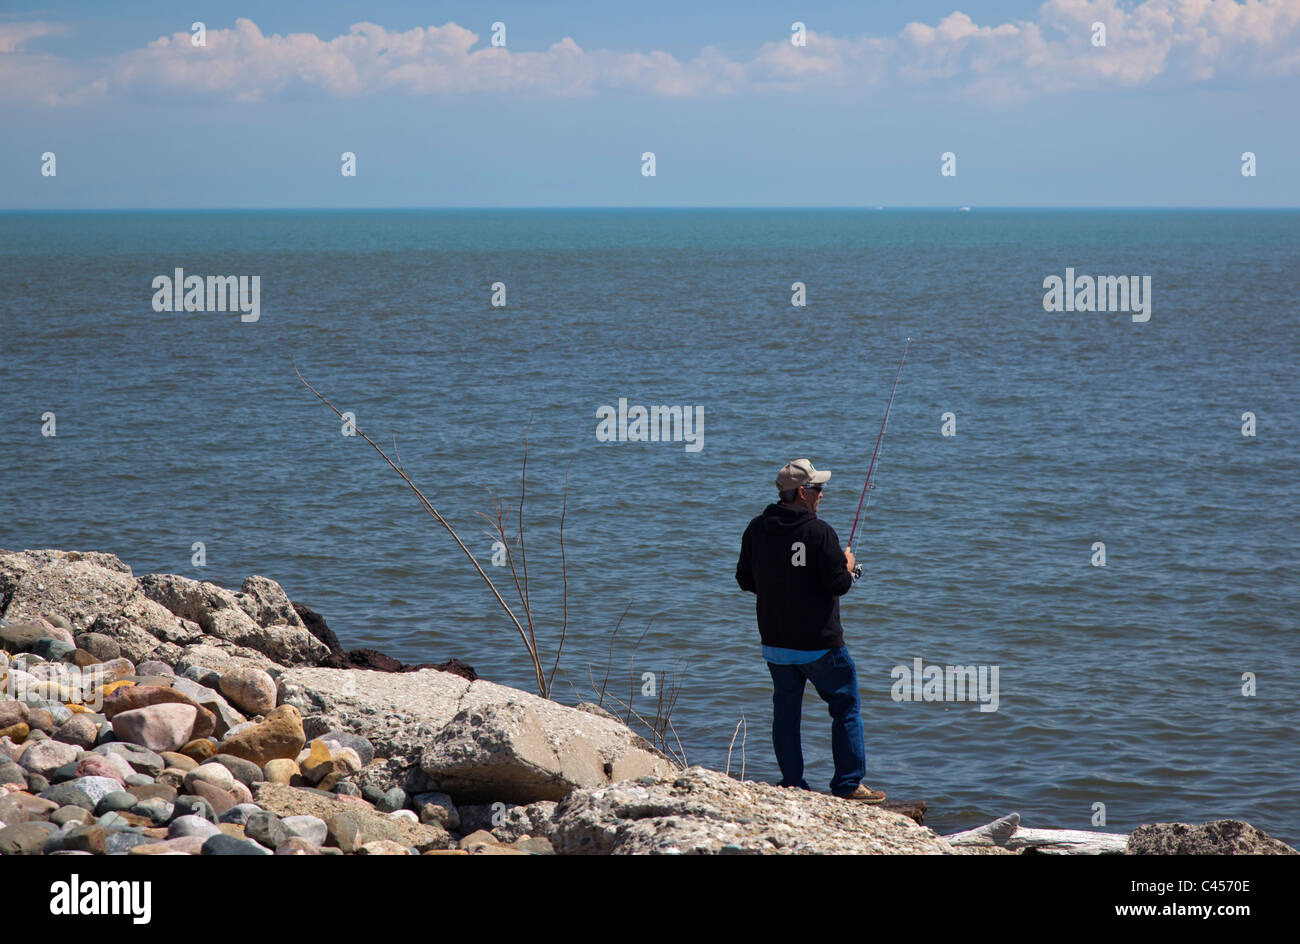 Harrison Township, Michigan - A man fishes from shore on Lake St. Clair. - Stock Image